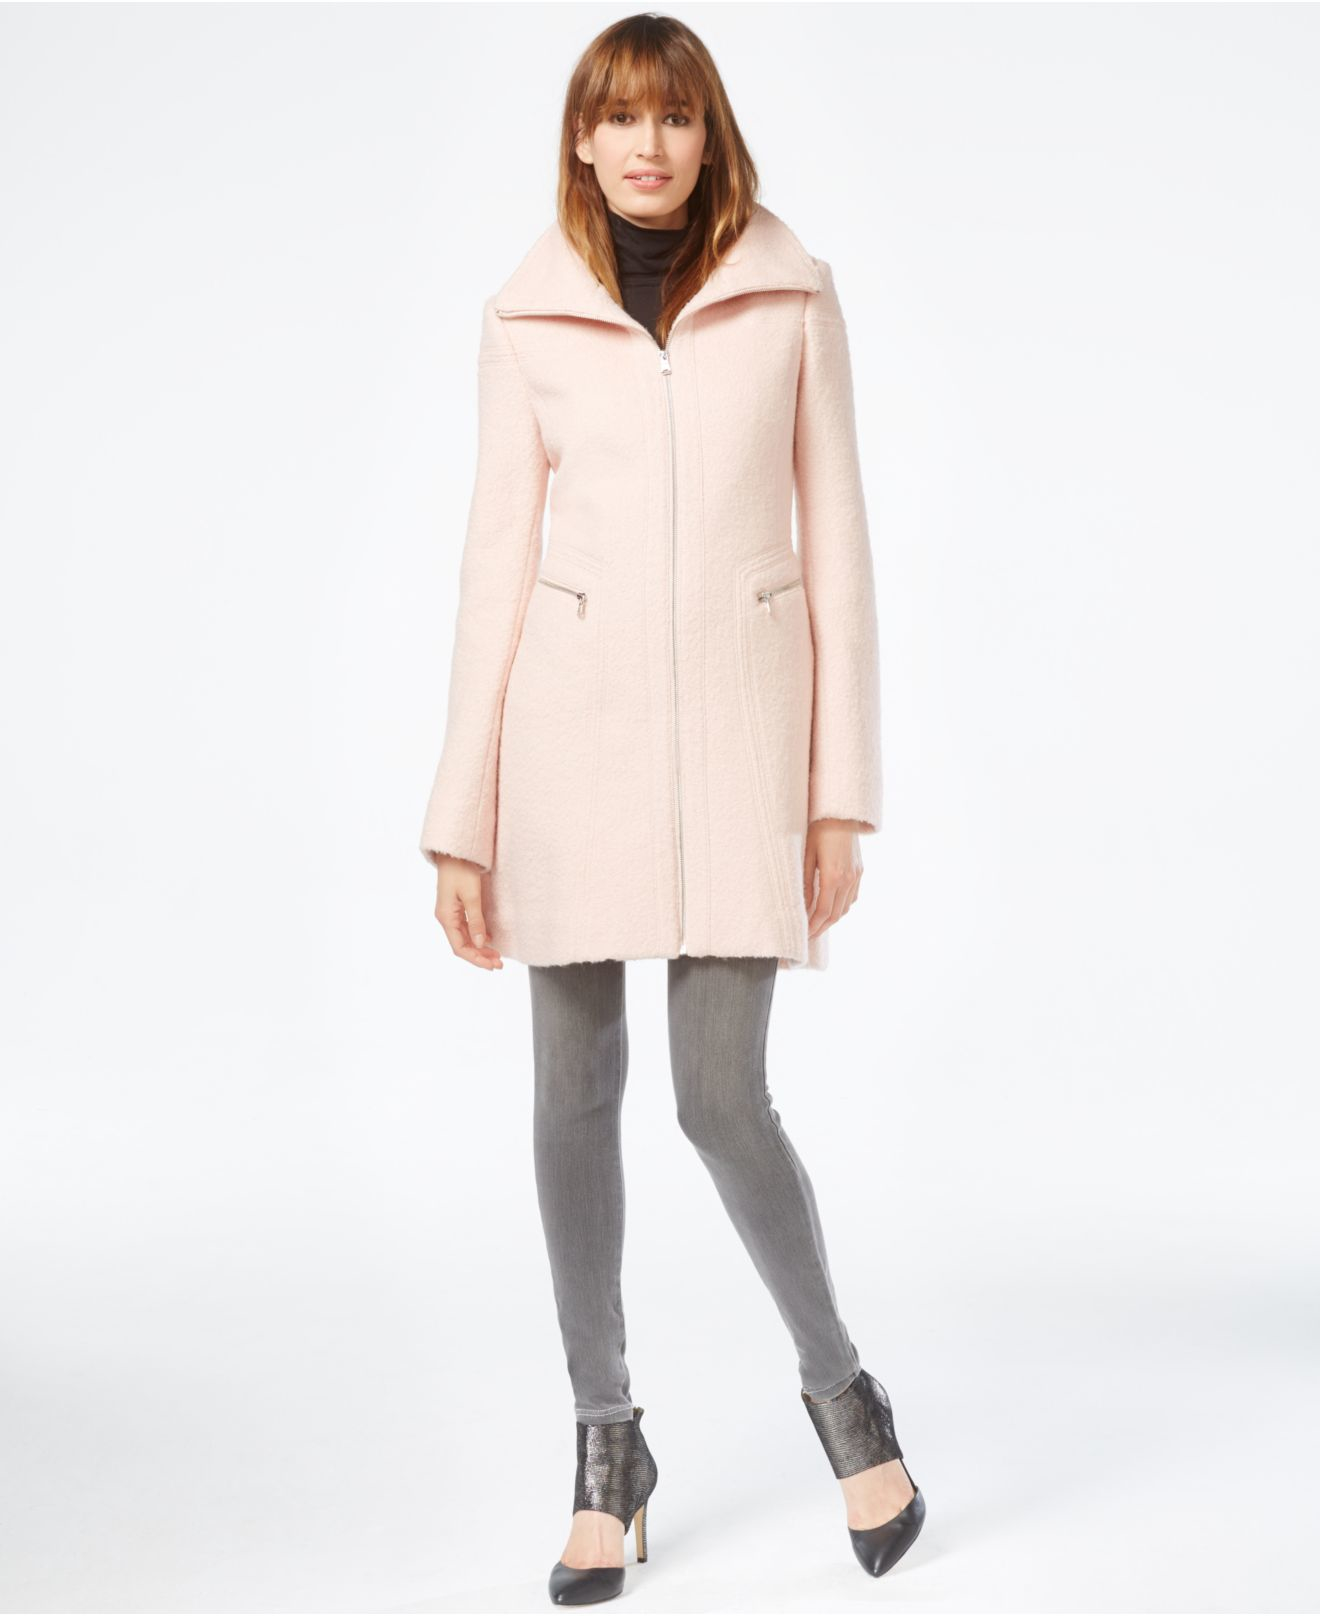 Jessica Simpson Pink Wool Coat